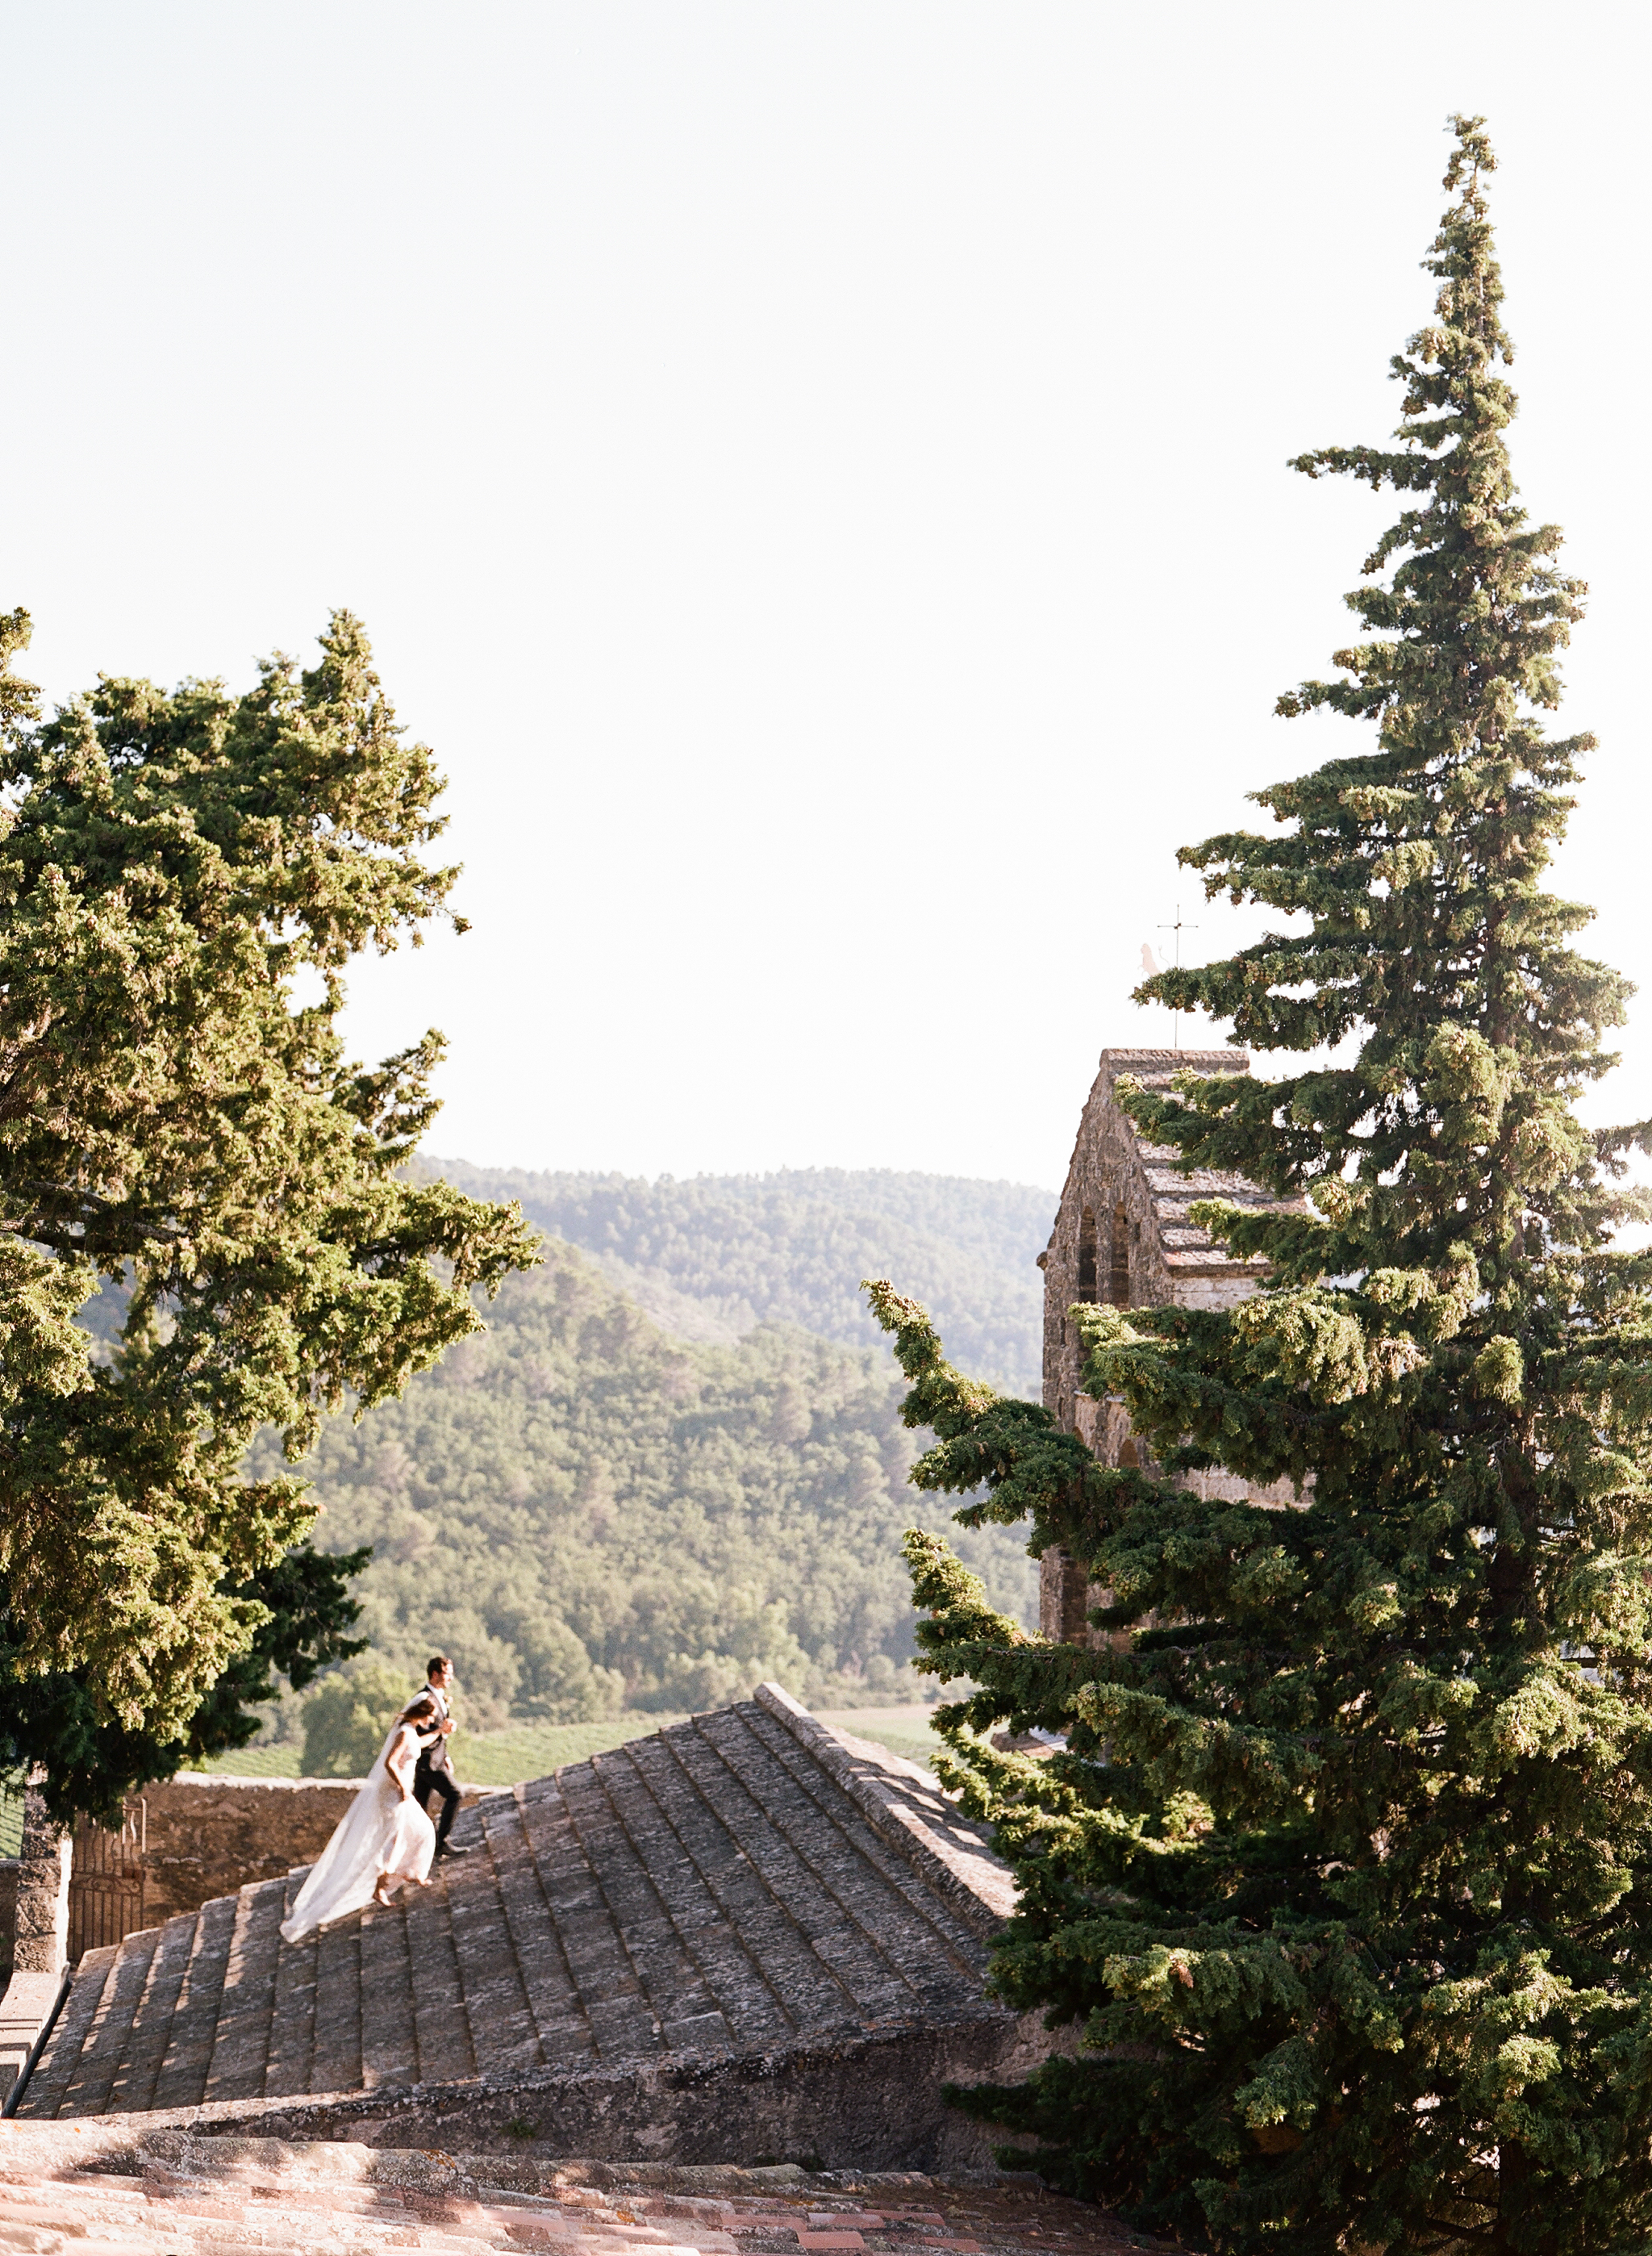 A bride and groom couple session on a village rooftop in Provence, France; Sylvie Gil Photography